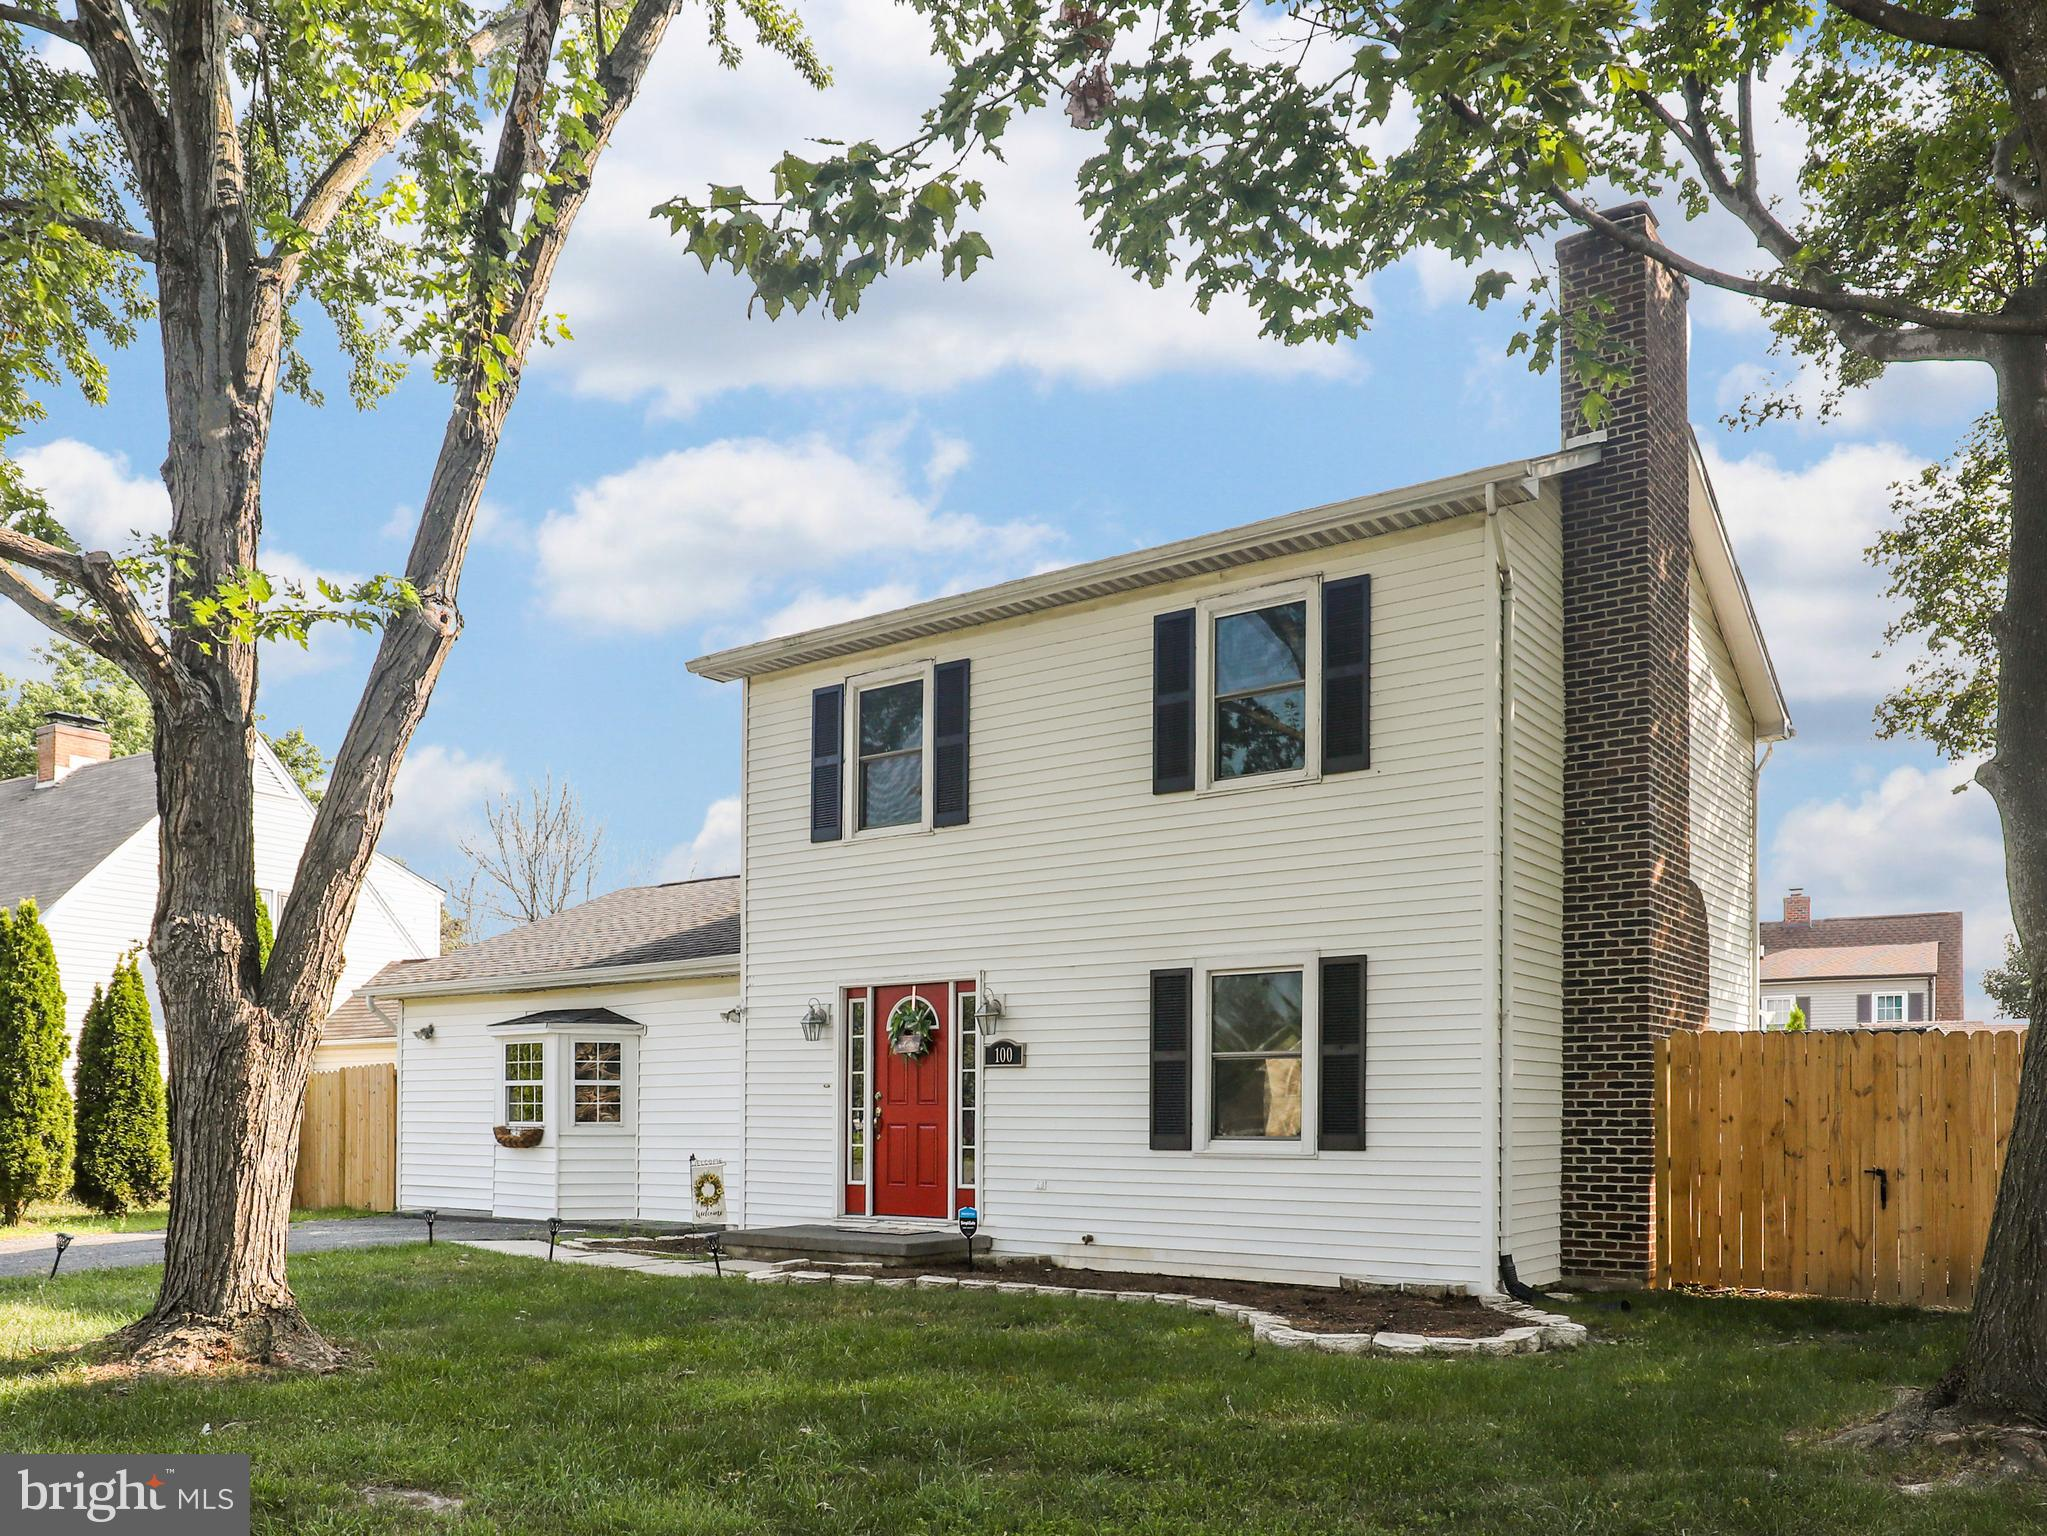 If you missed this house back in April, here's your second chance! Current owners love the house, bu